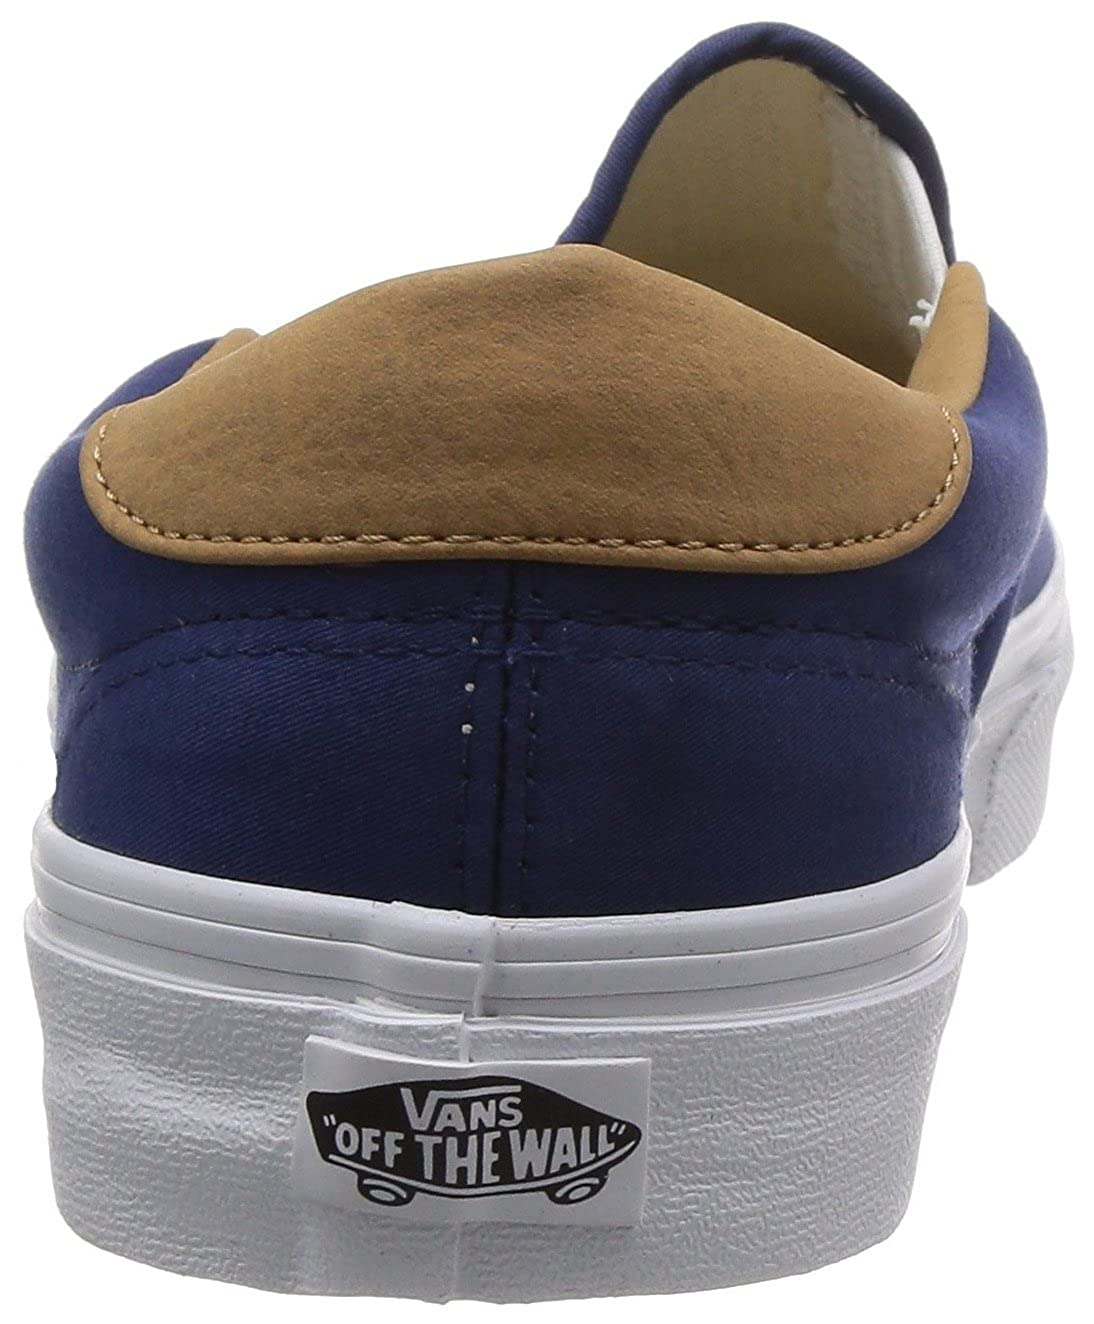 Vans HerrenDamen U Authentic (Washed) Black Sneakers, Rosso